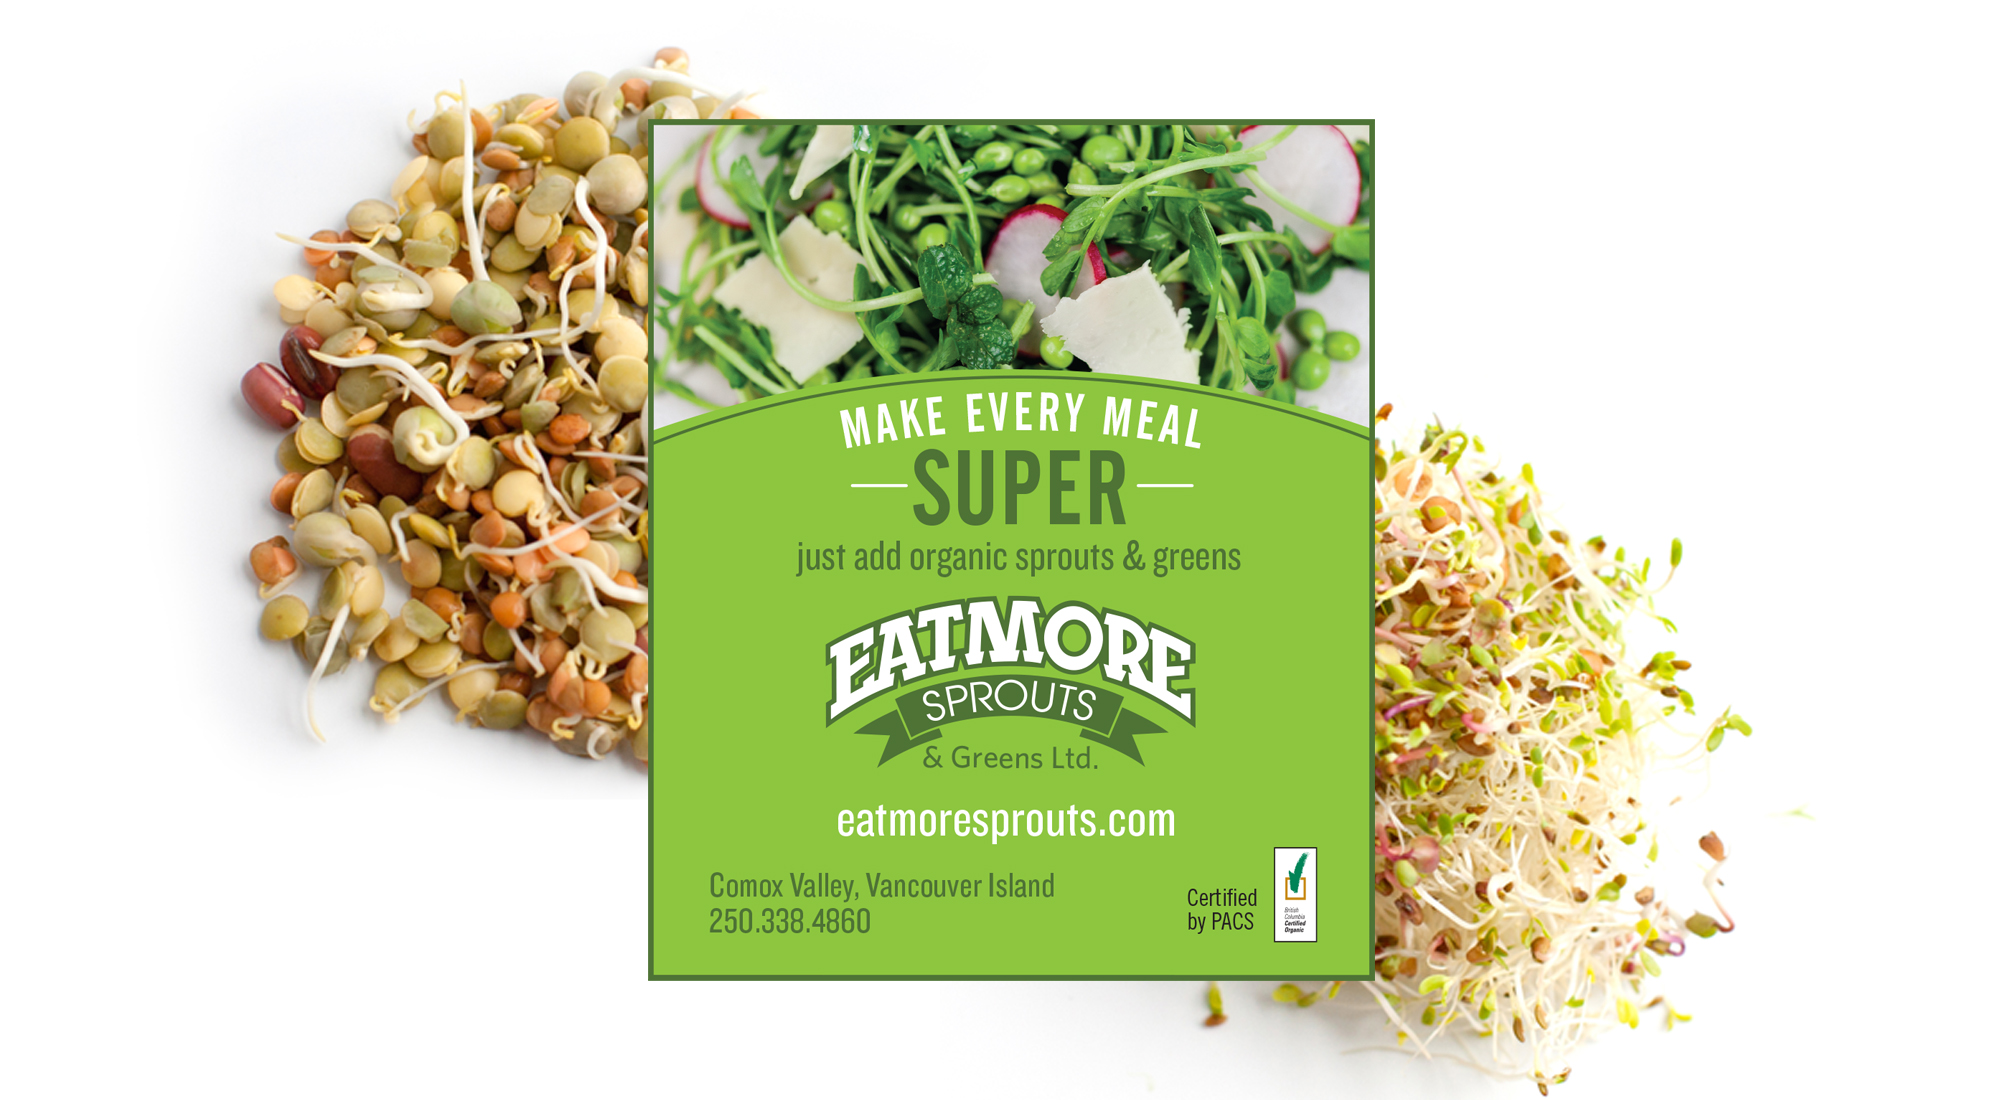 Eatmore-Sprouts